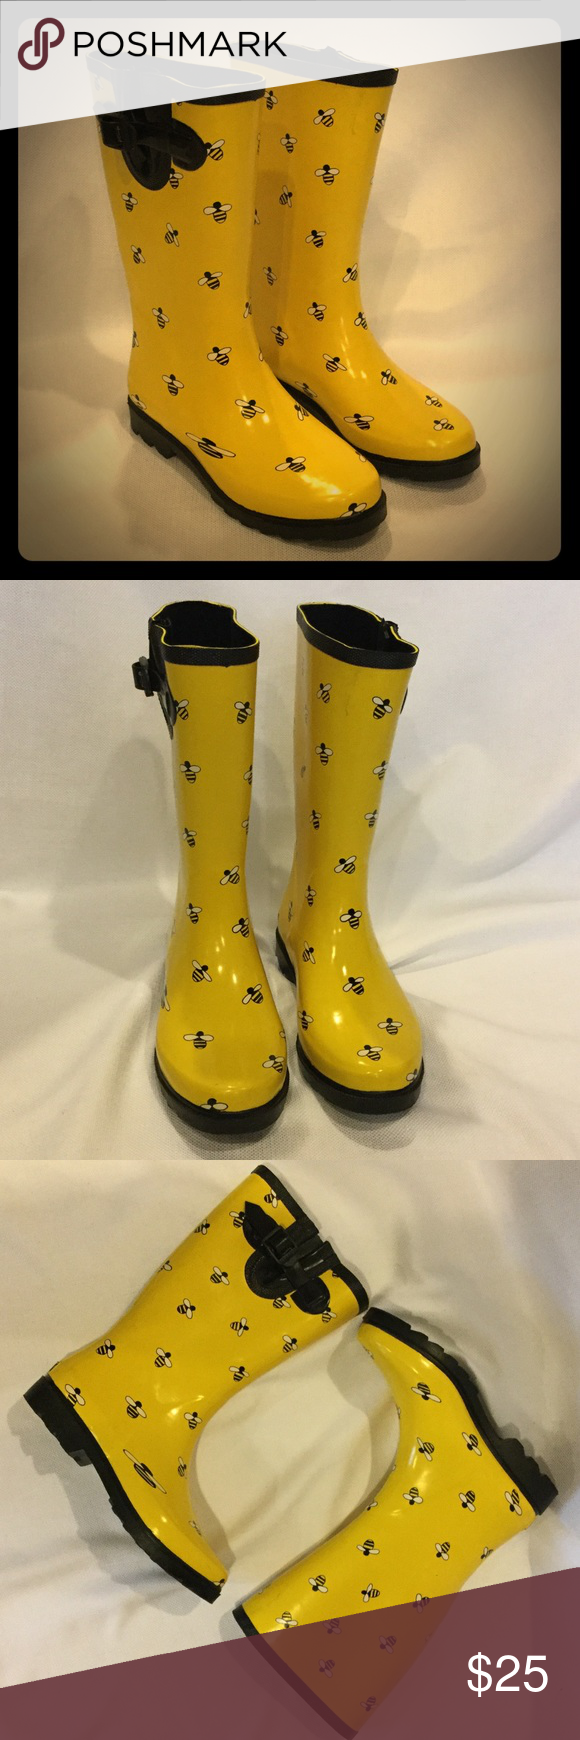 Ranger bumble bee rubber boots bumble bees rain boot and bees